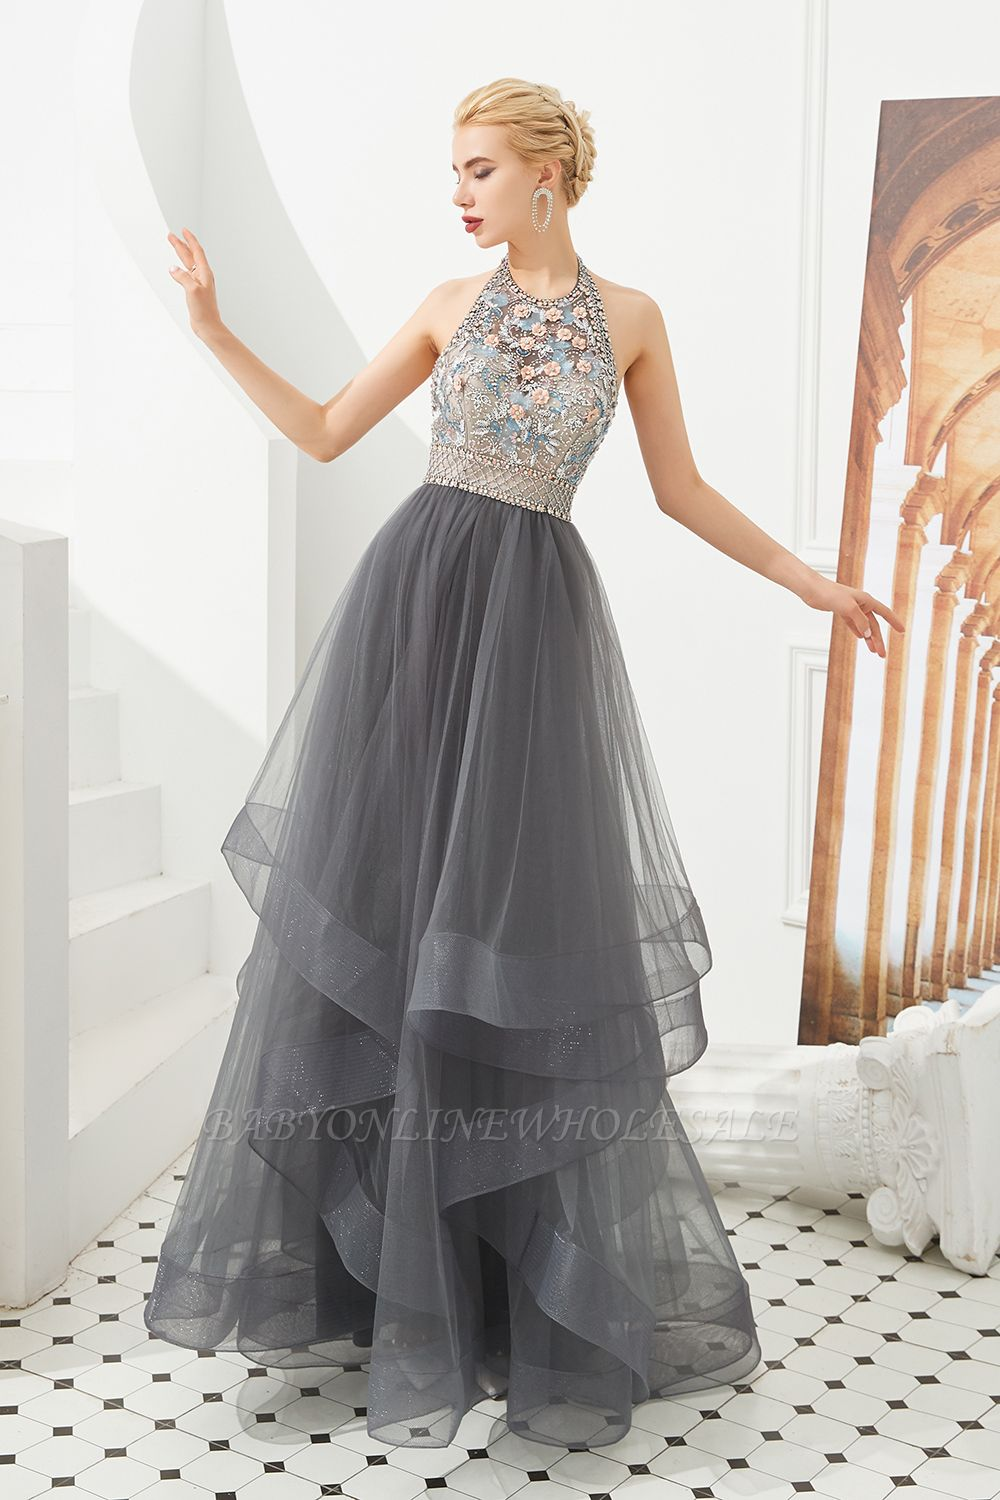 Floral Halter Evening Dress with Sparkle Beads | Trendy Gray Mother of the bride Dress with watermelon and blue decorations